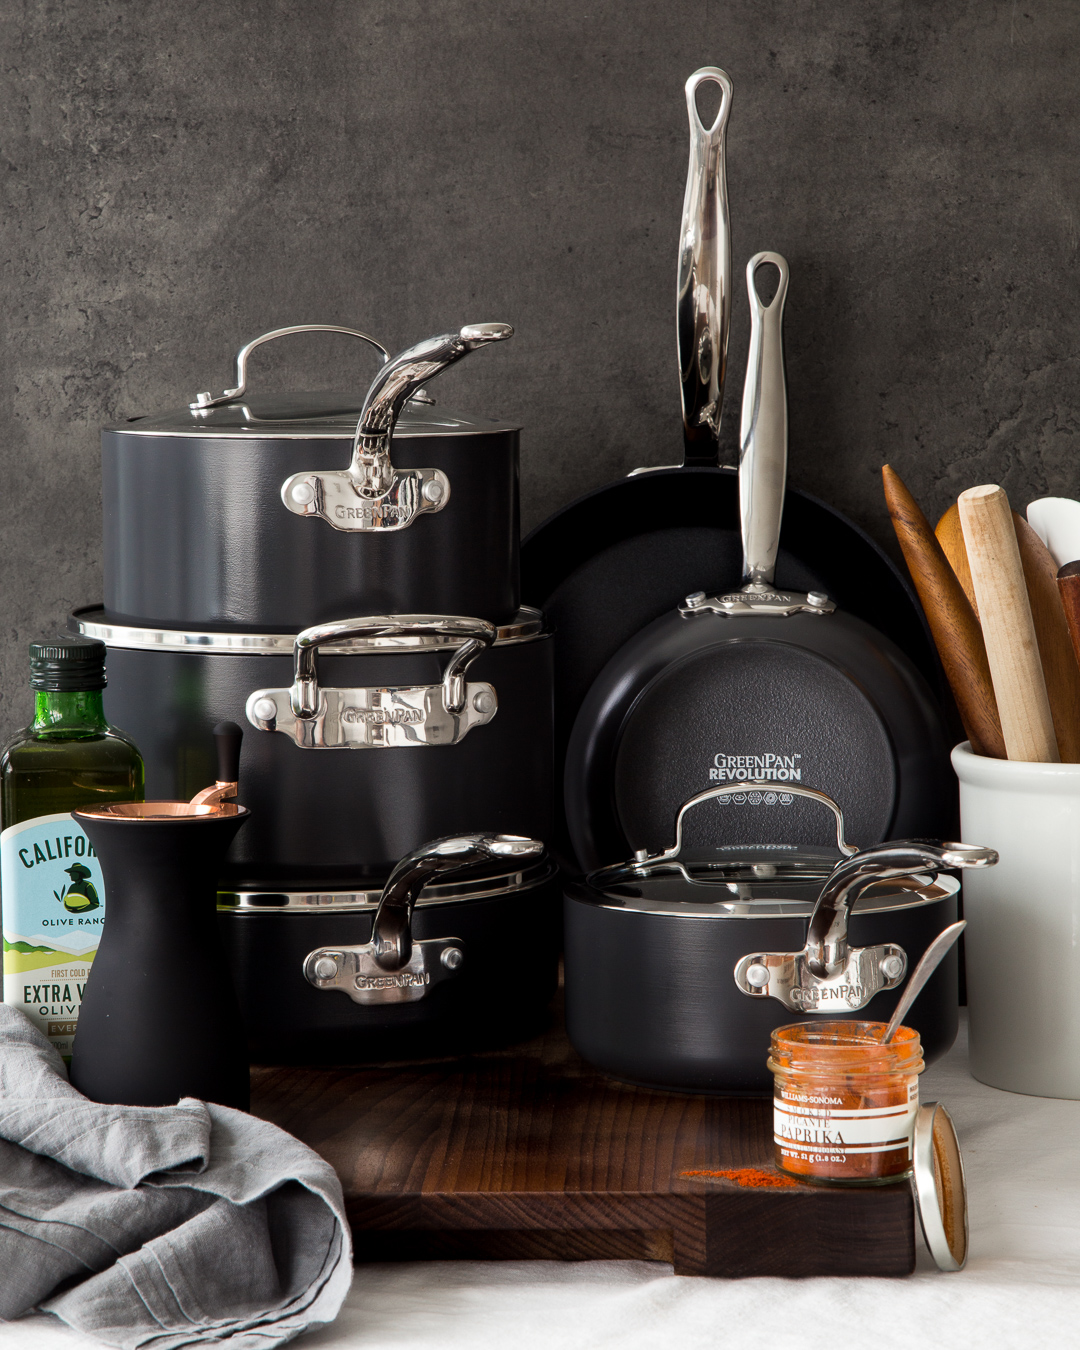 Giveaway - GreenPan Revolution 10-pc Set